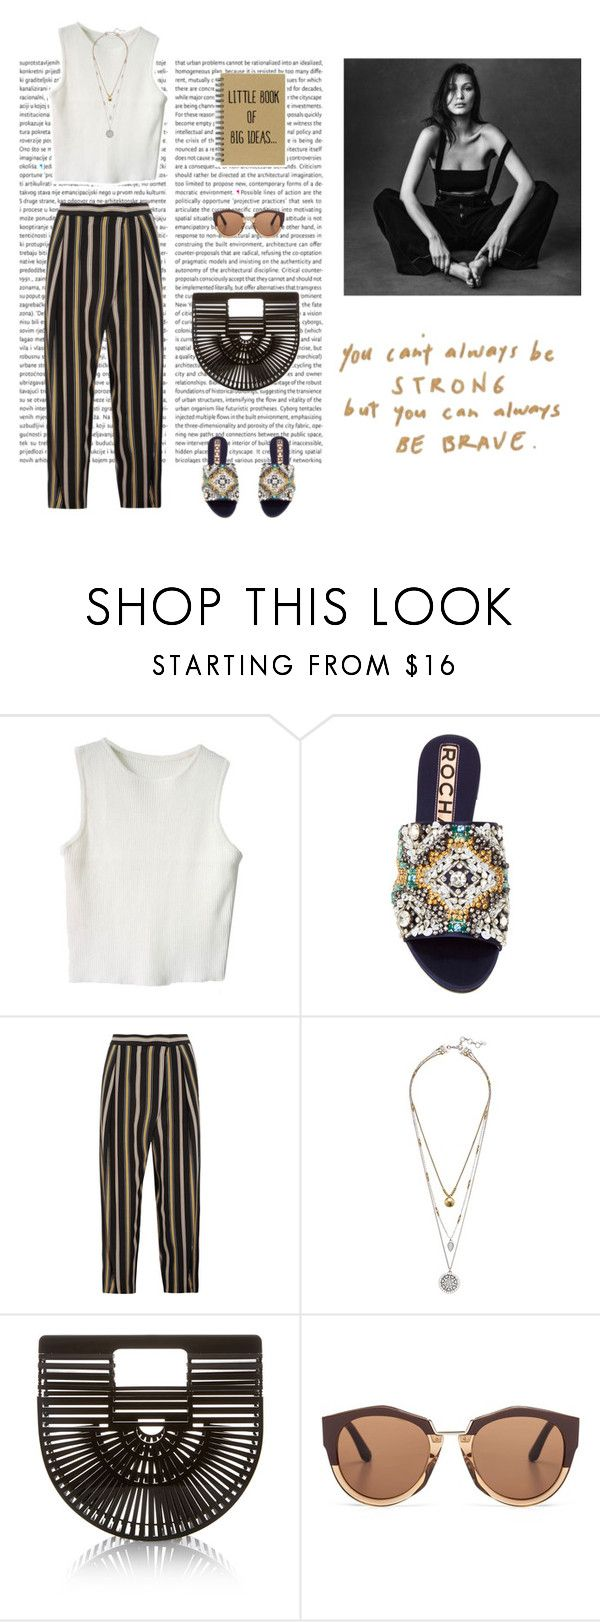 """Staying classy during summer"" by dorey on Polyvore featuring Rochas, Chloé, Lucky Brand, Cult Gaia and Marni"